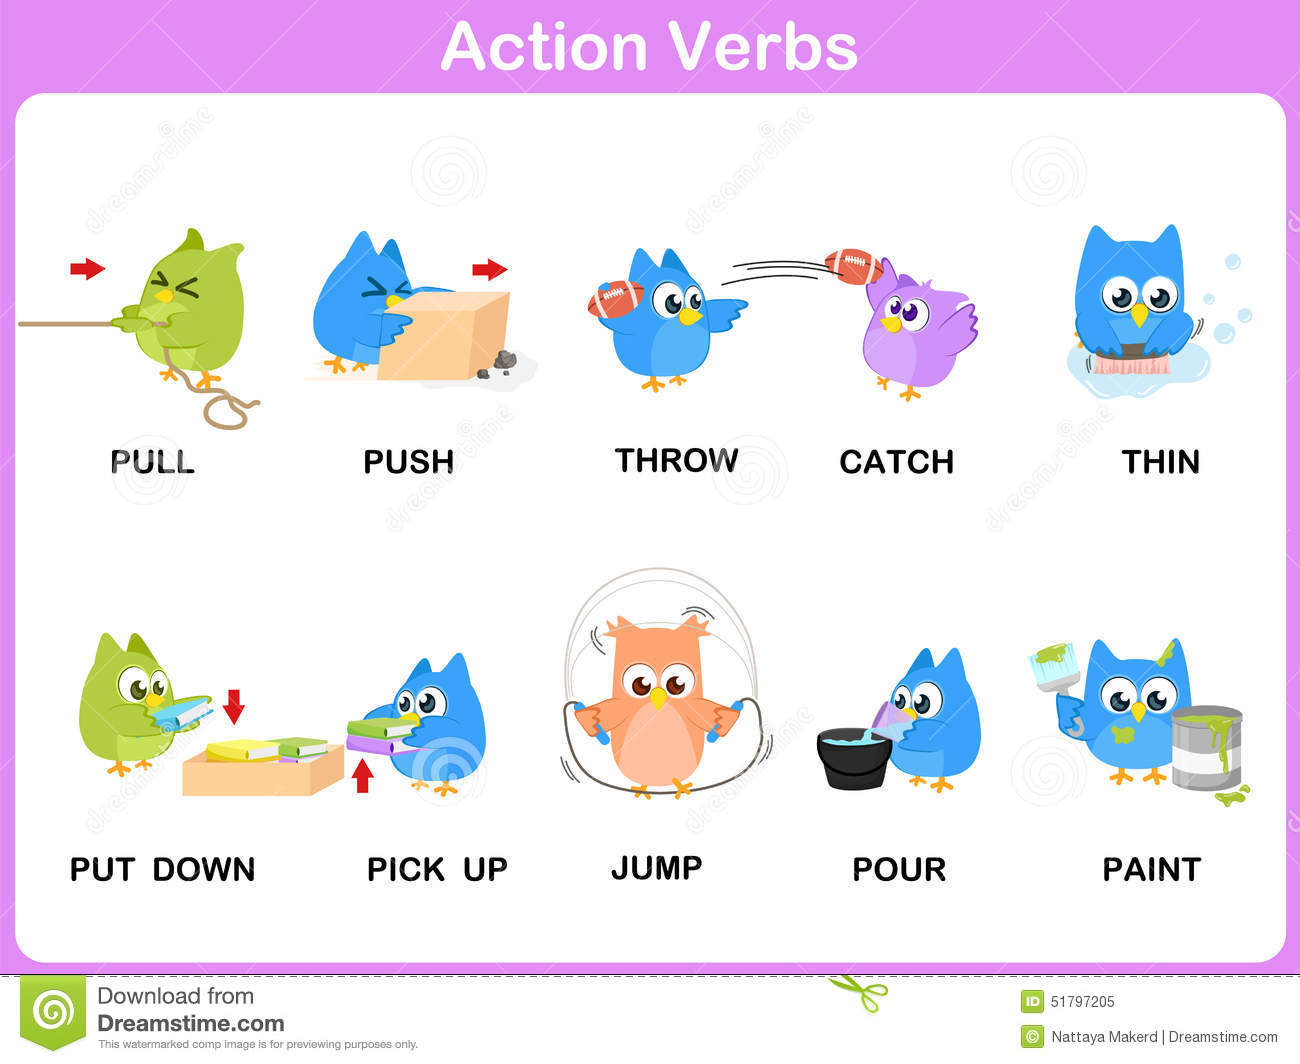 action verbs picture dictionary activity for kids stock vector action verbs picture dictionary activity for kids